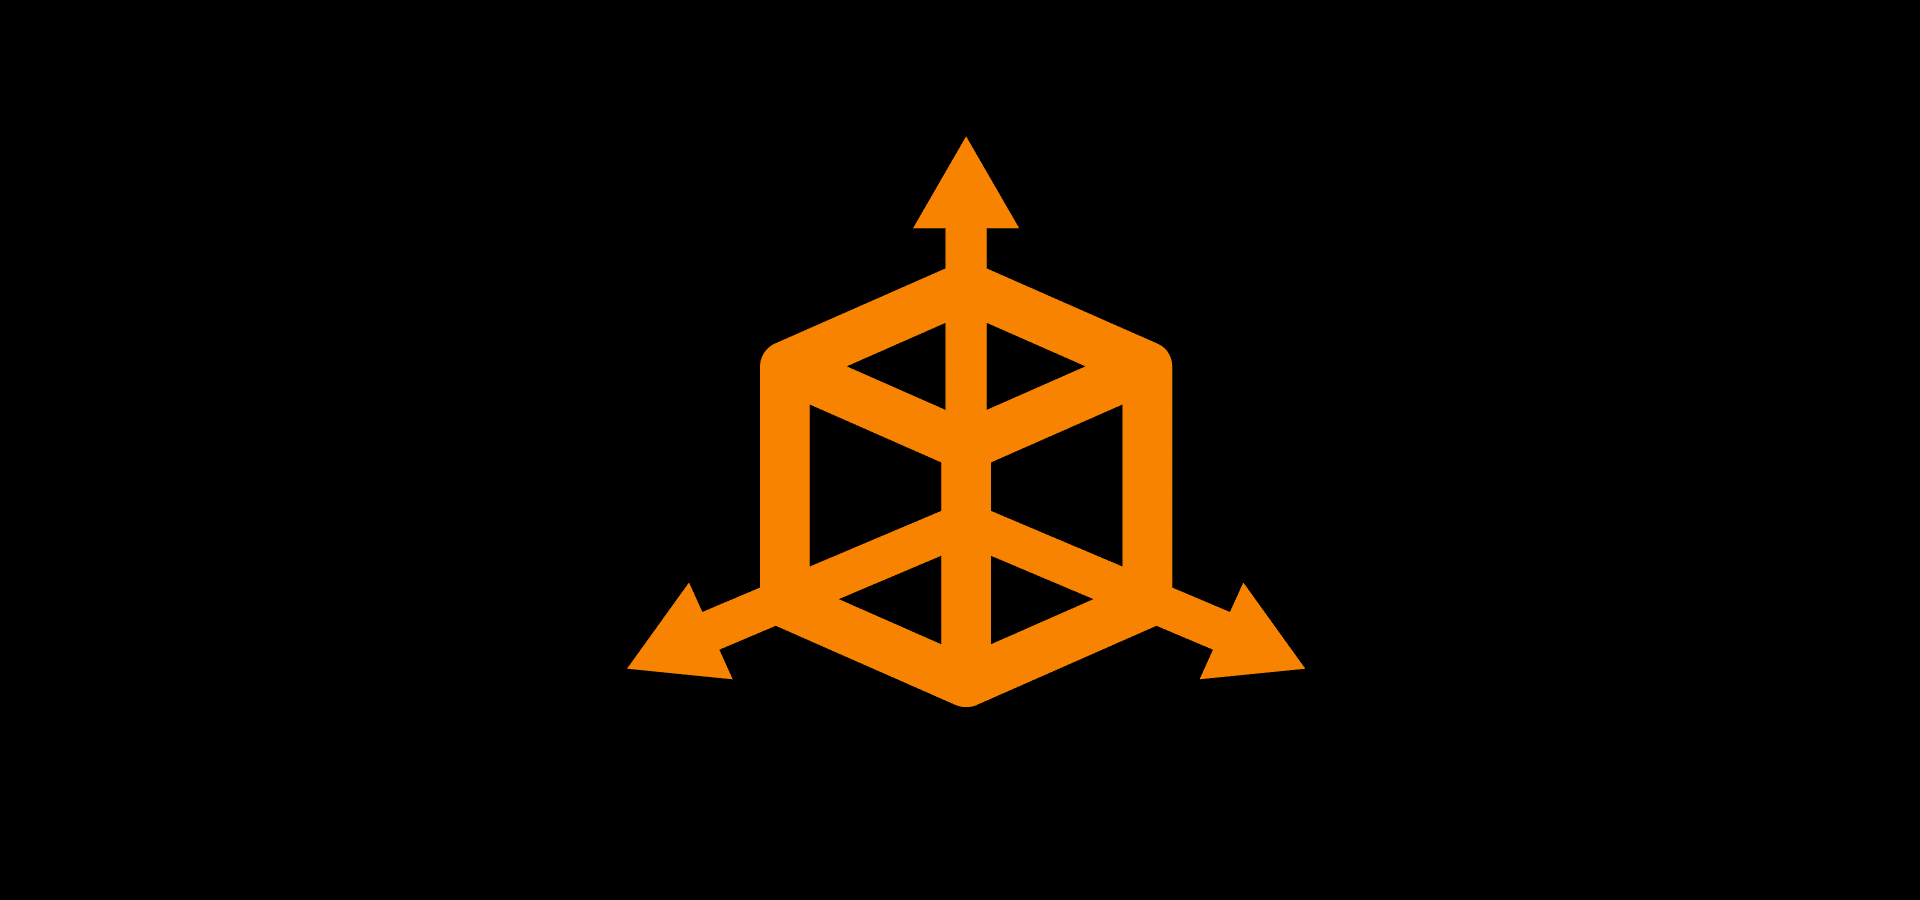 dynamic orange icon